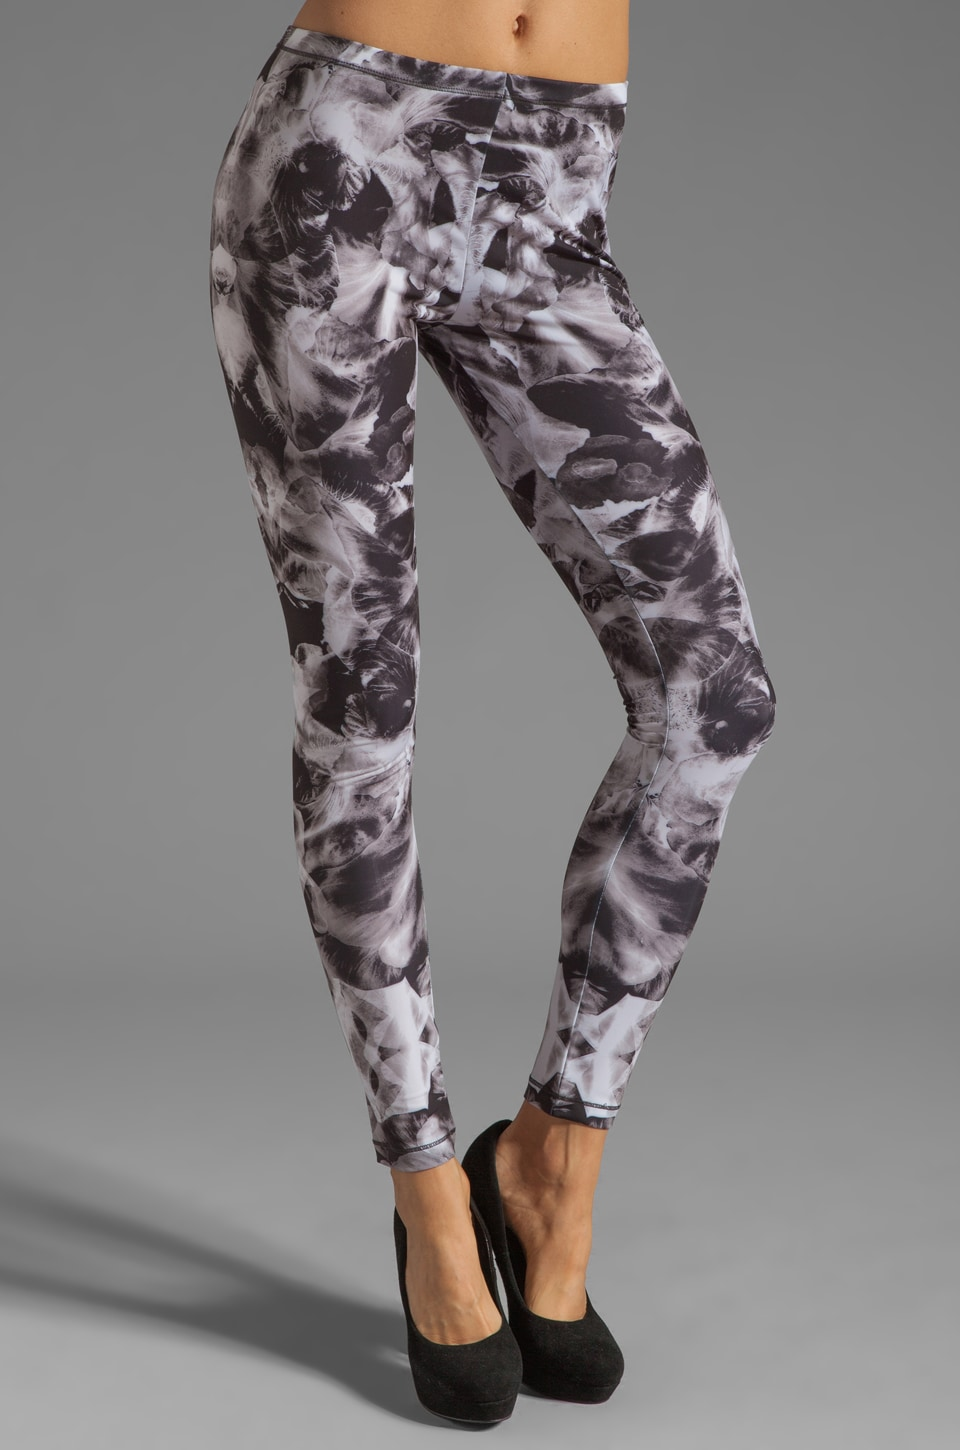 McQ Alexander McQueen Printed Leggings in Black/White